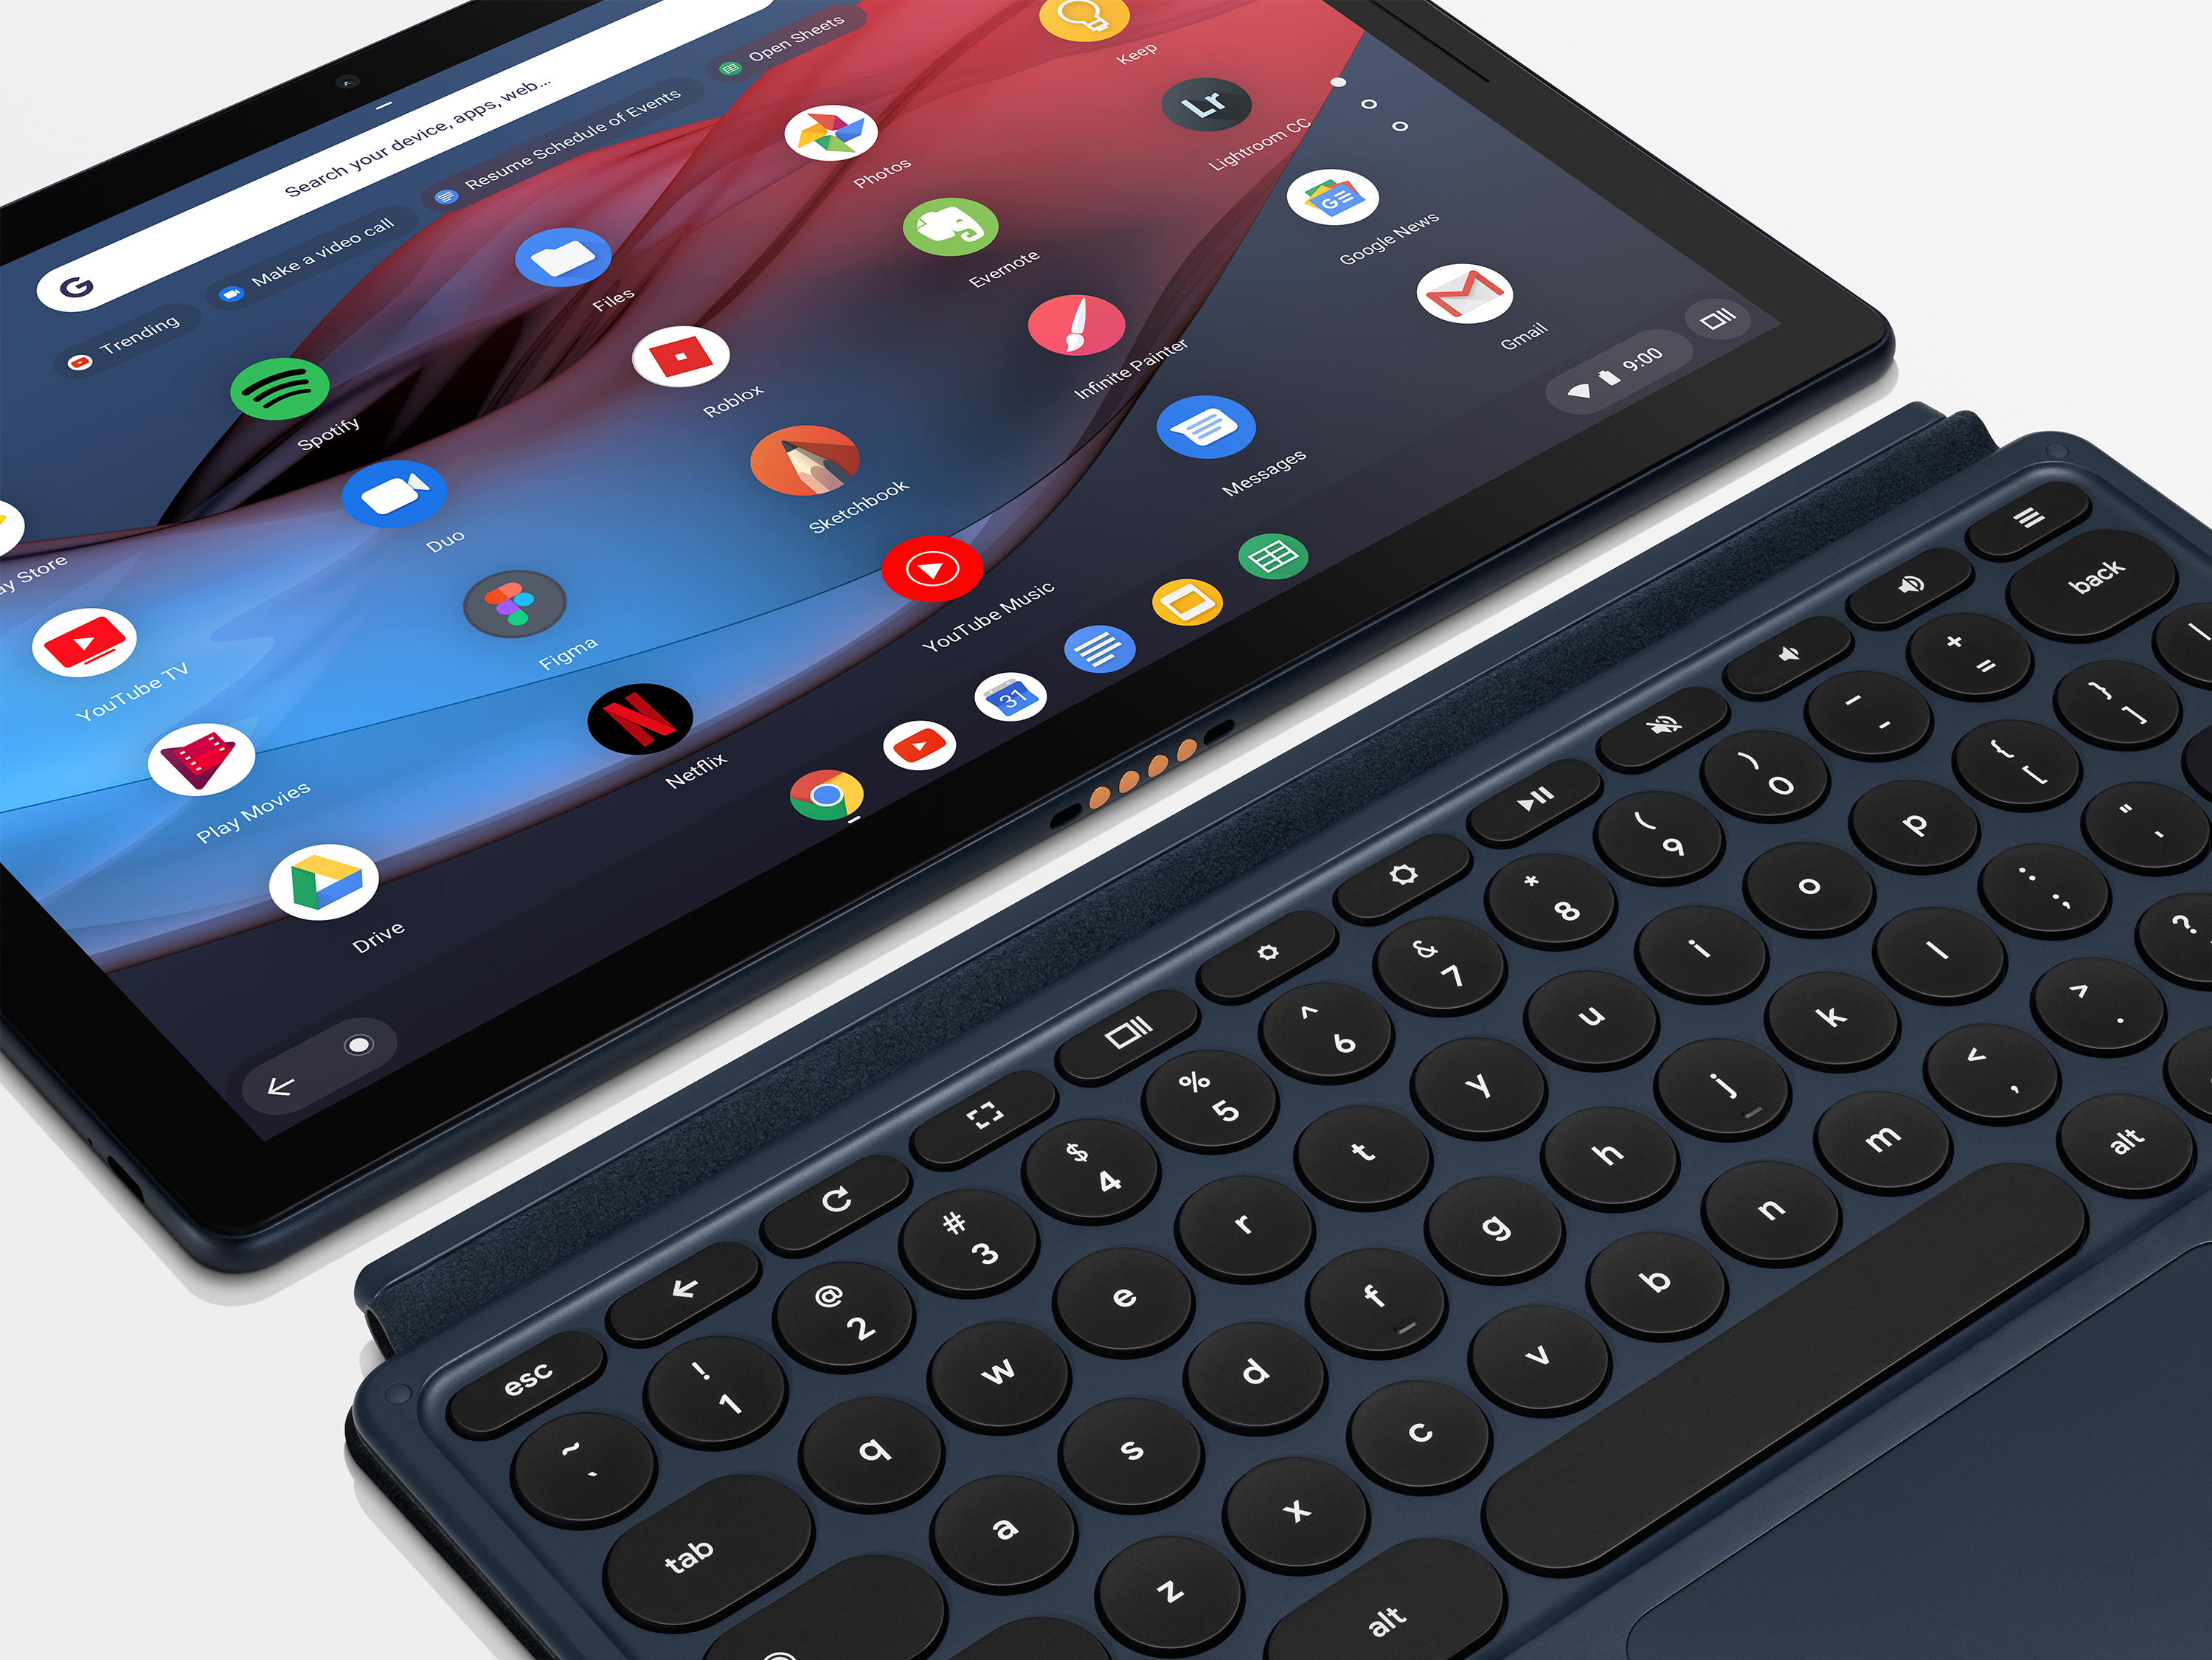 Google Pixel Slate with accessory keyboard.